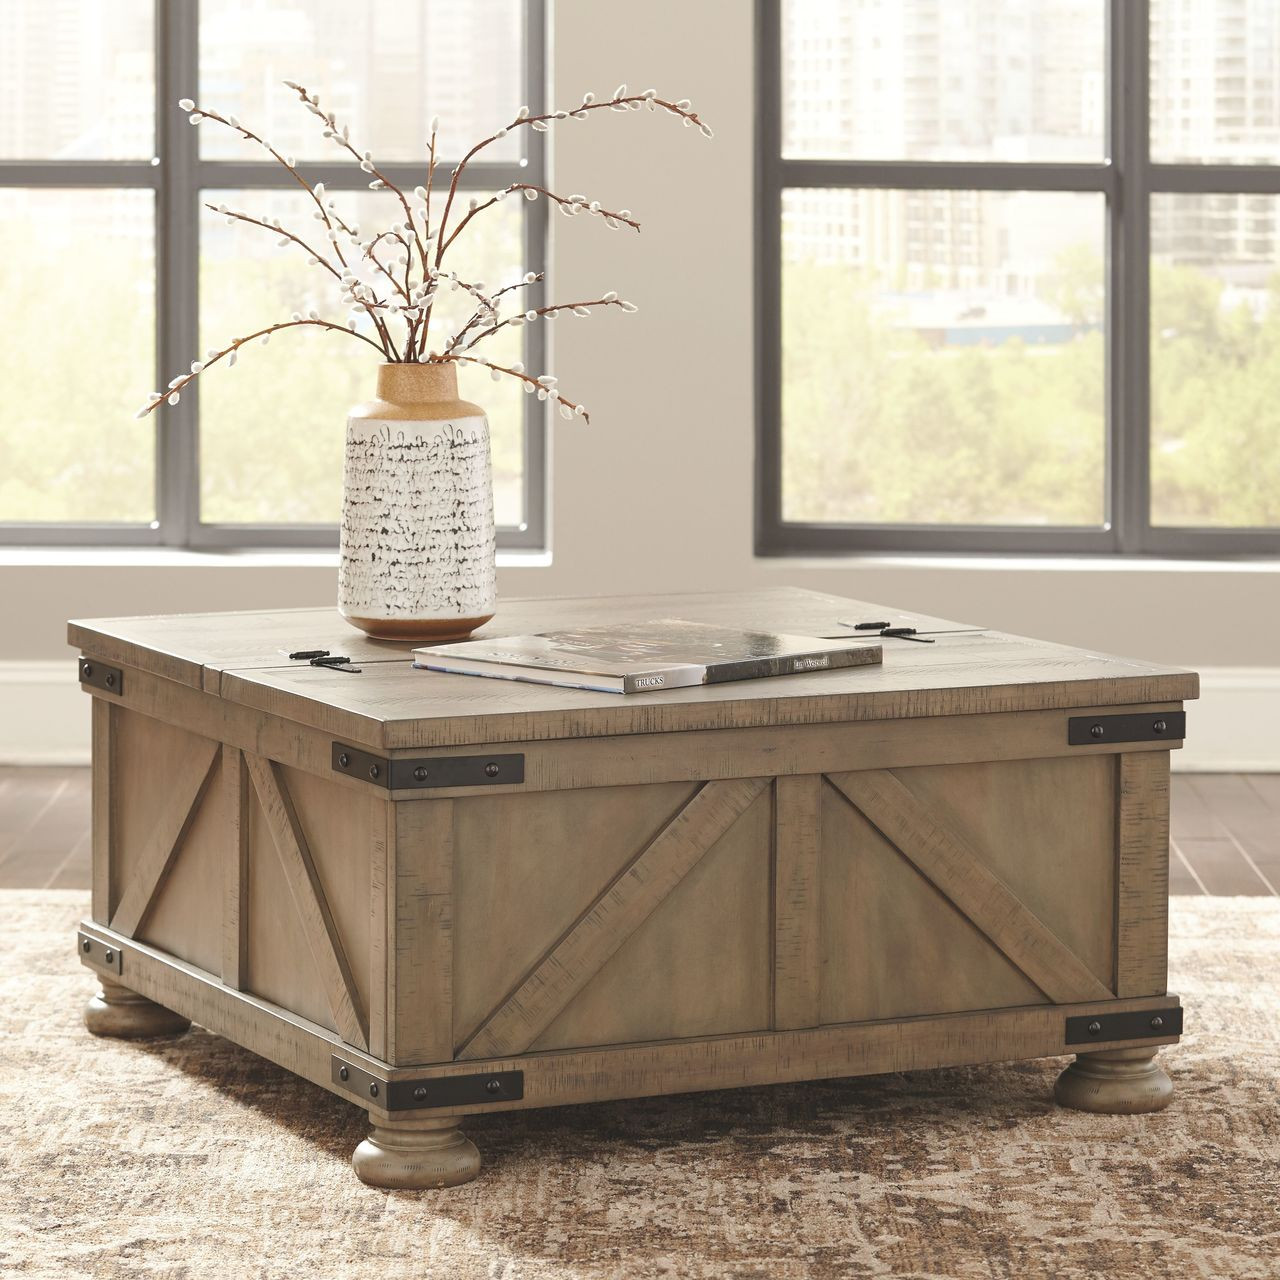 The Aldwin Gray Cocktail Table With Storage Available At Royal Star Furniture Serving St Paul Mn